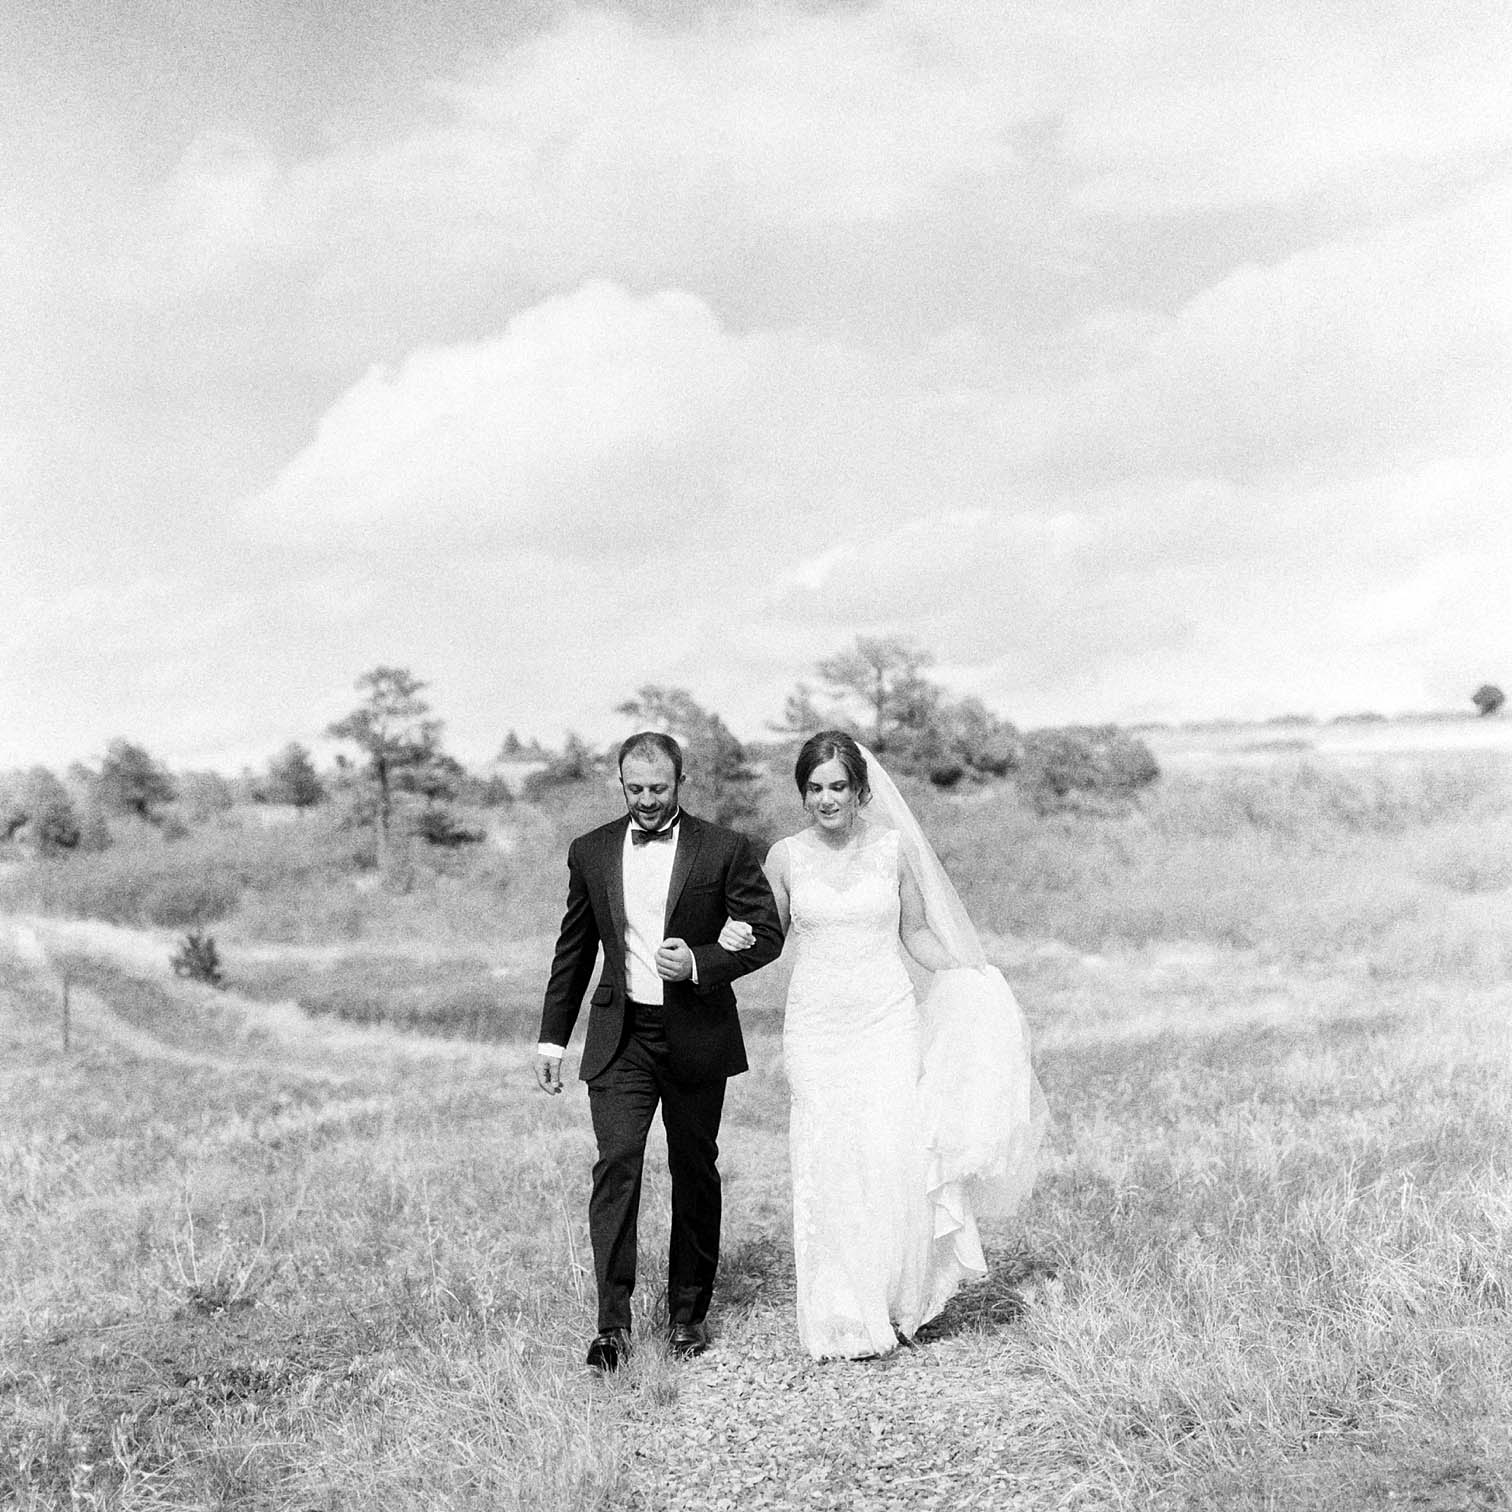 First Look, Mountain Weddings, Rolleiflex, Danielle DeFiore Photographer, Bride and Groom Portraits, Colorado Wedding Photographers, Castle Wedding, Classic Black tie Wedding, Film Photographer, Colorado Weddings, Black and White Photography